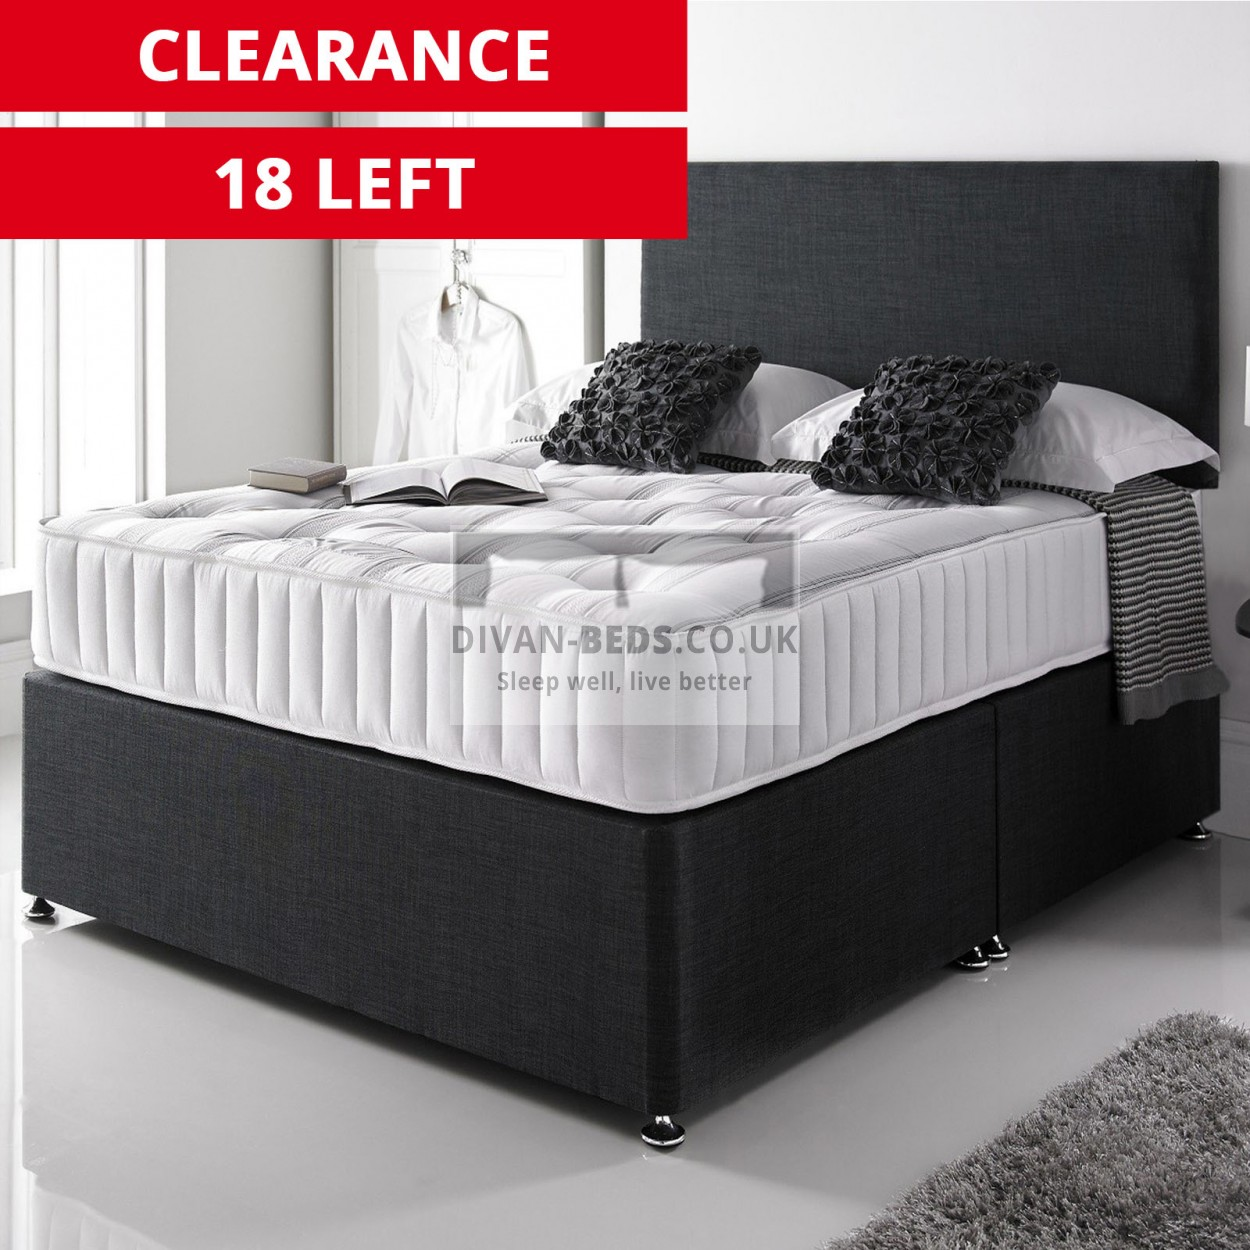 Divan Bed And Mattress Deals Giles Divan Bed With 3000 Pocket Spring Memory Foam Mattress